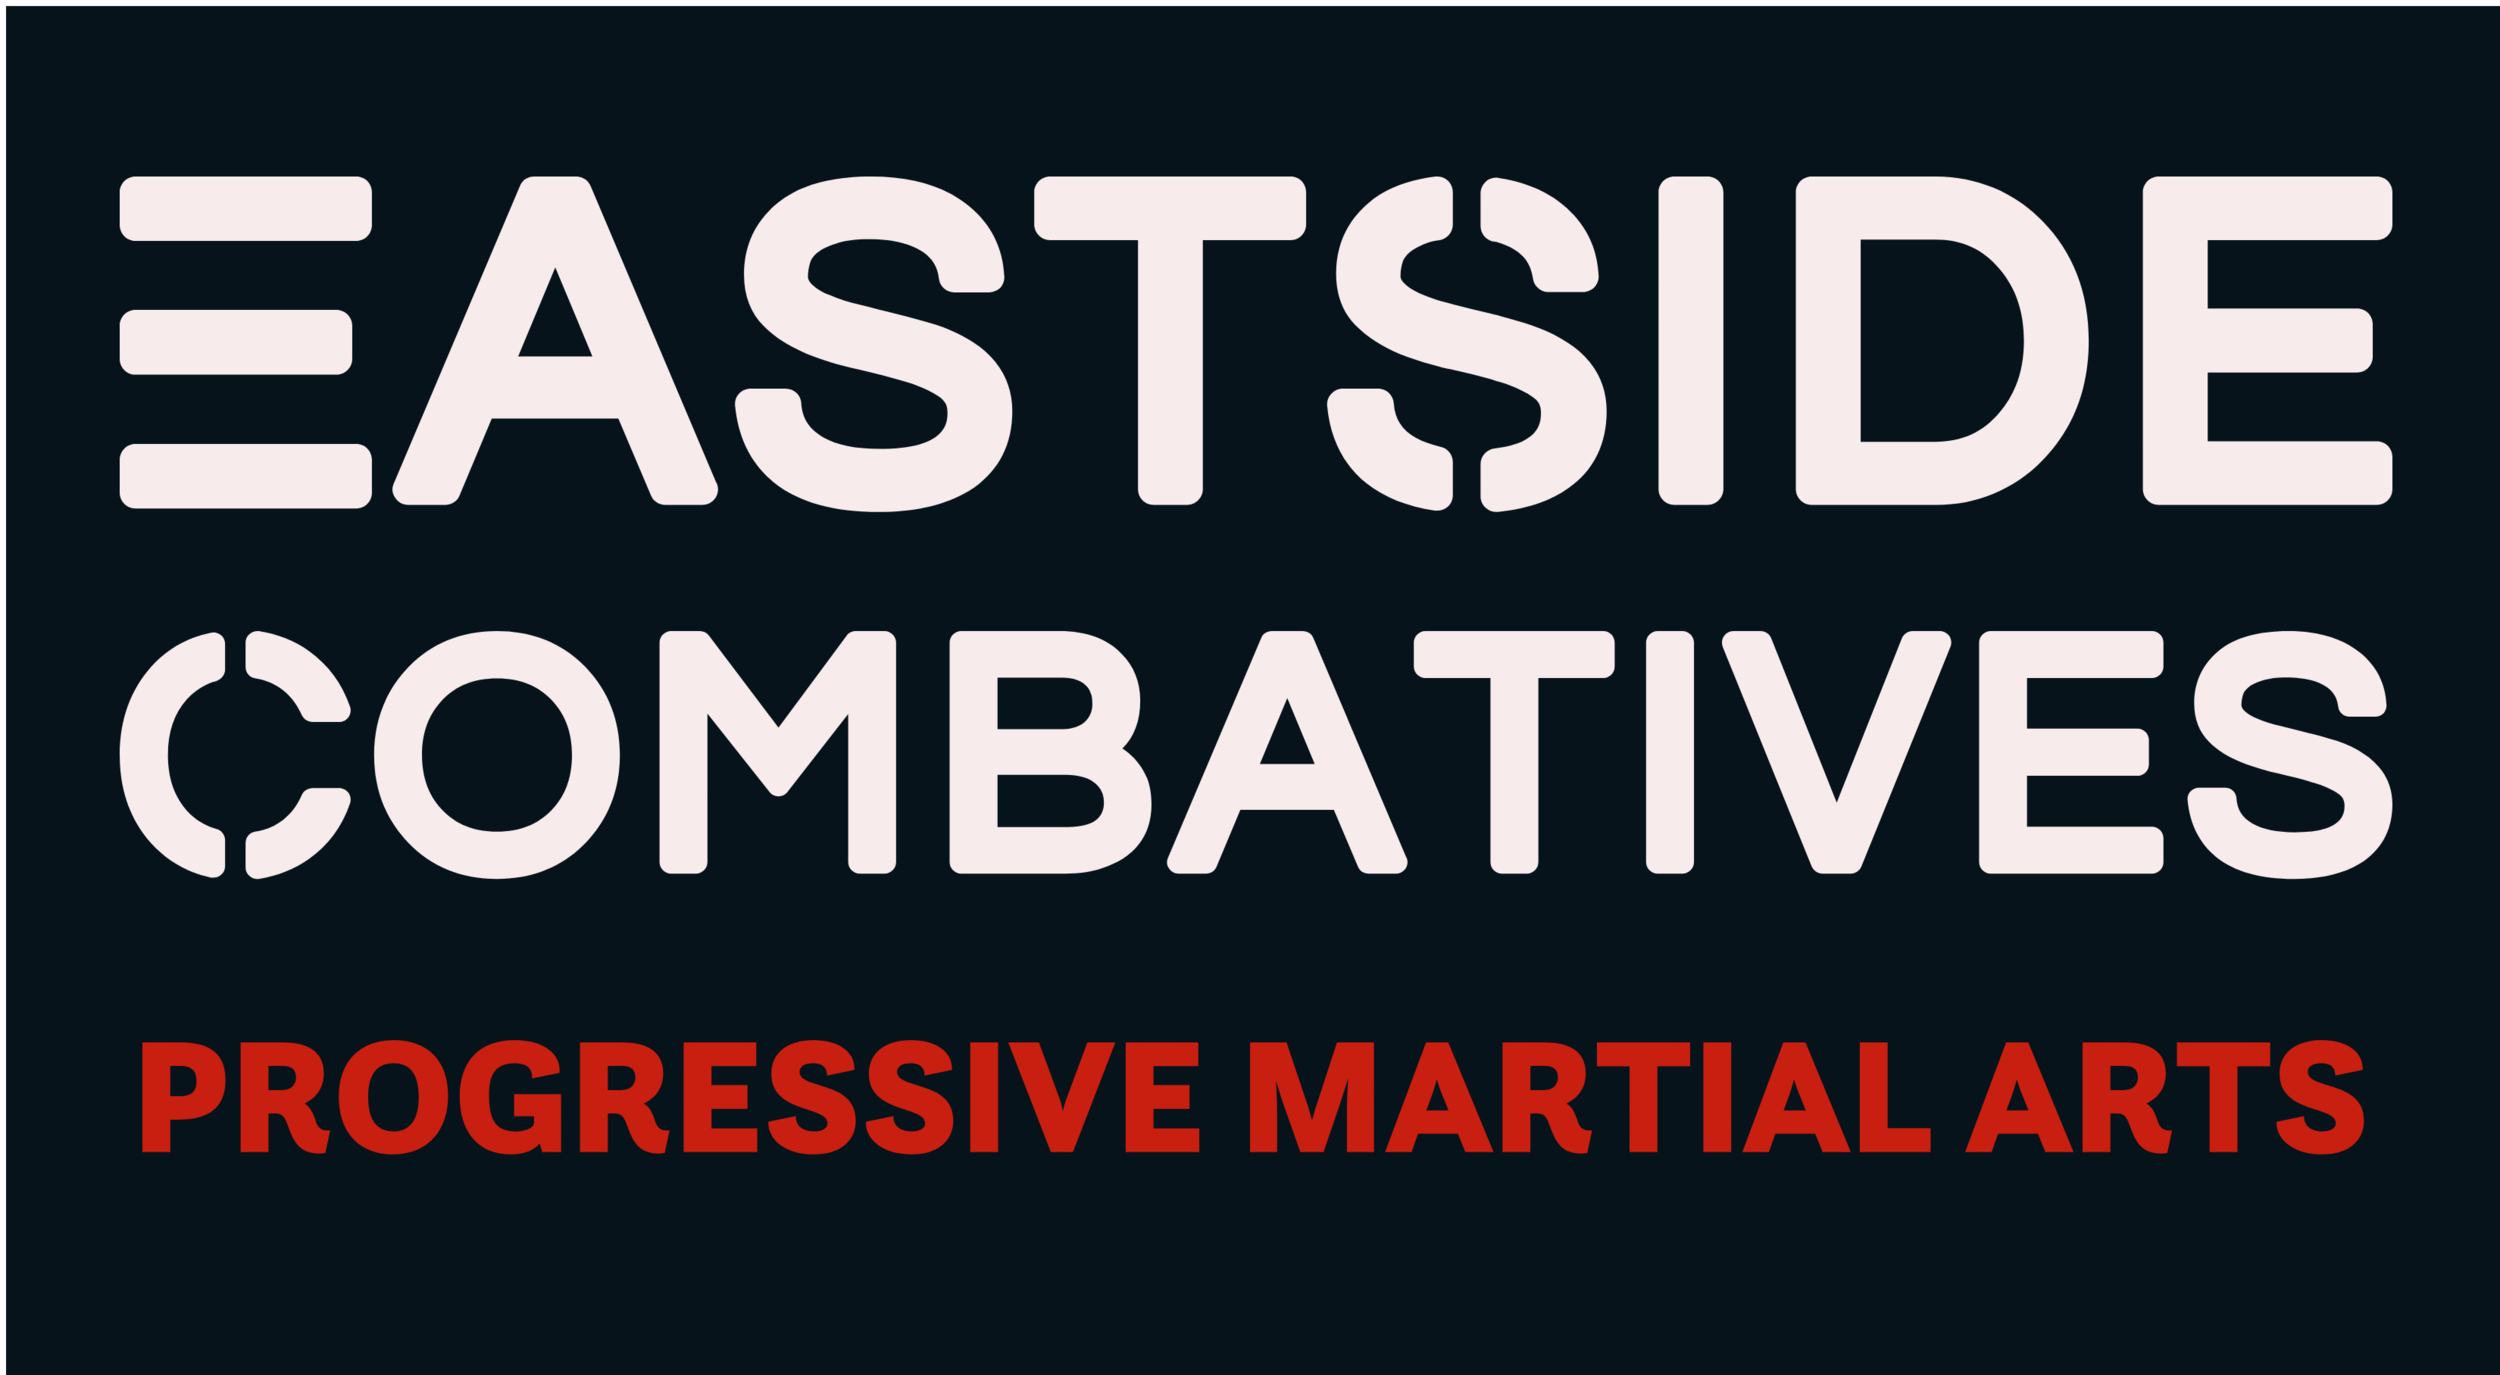 EastSide Combatives Class - EastSide Combatives Classes are offered every Thursday and covers practical and realistic martial arts and combatives training that is effective and usable in today's world. We work with empty hands, stick, knife and firearms as these are the tools of modern personal protection and self defense. Slots are limited for these classes so please reserve your spot ahead of time and we'll see you in class!For more information about the philosophy and teachings of EastSide Combatives Progressive Martial Arts, visit https://www.eastsidecombatives.com